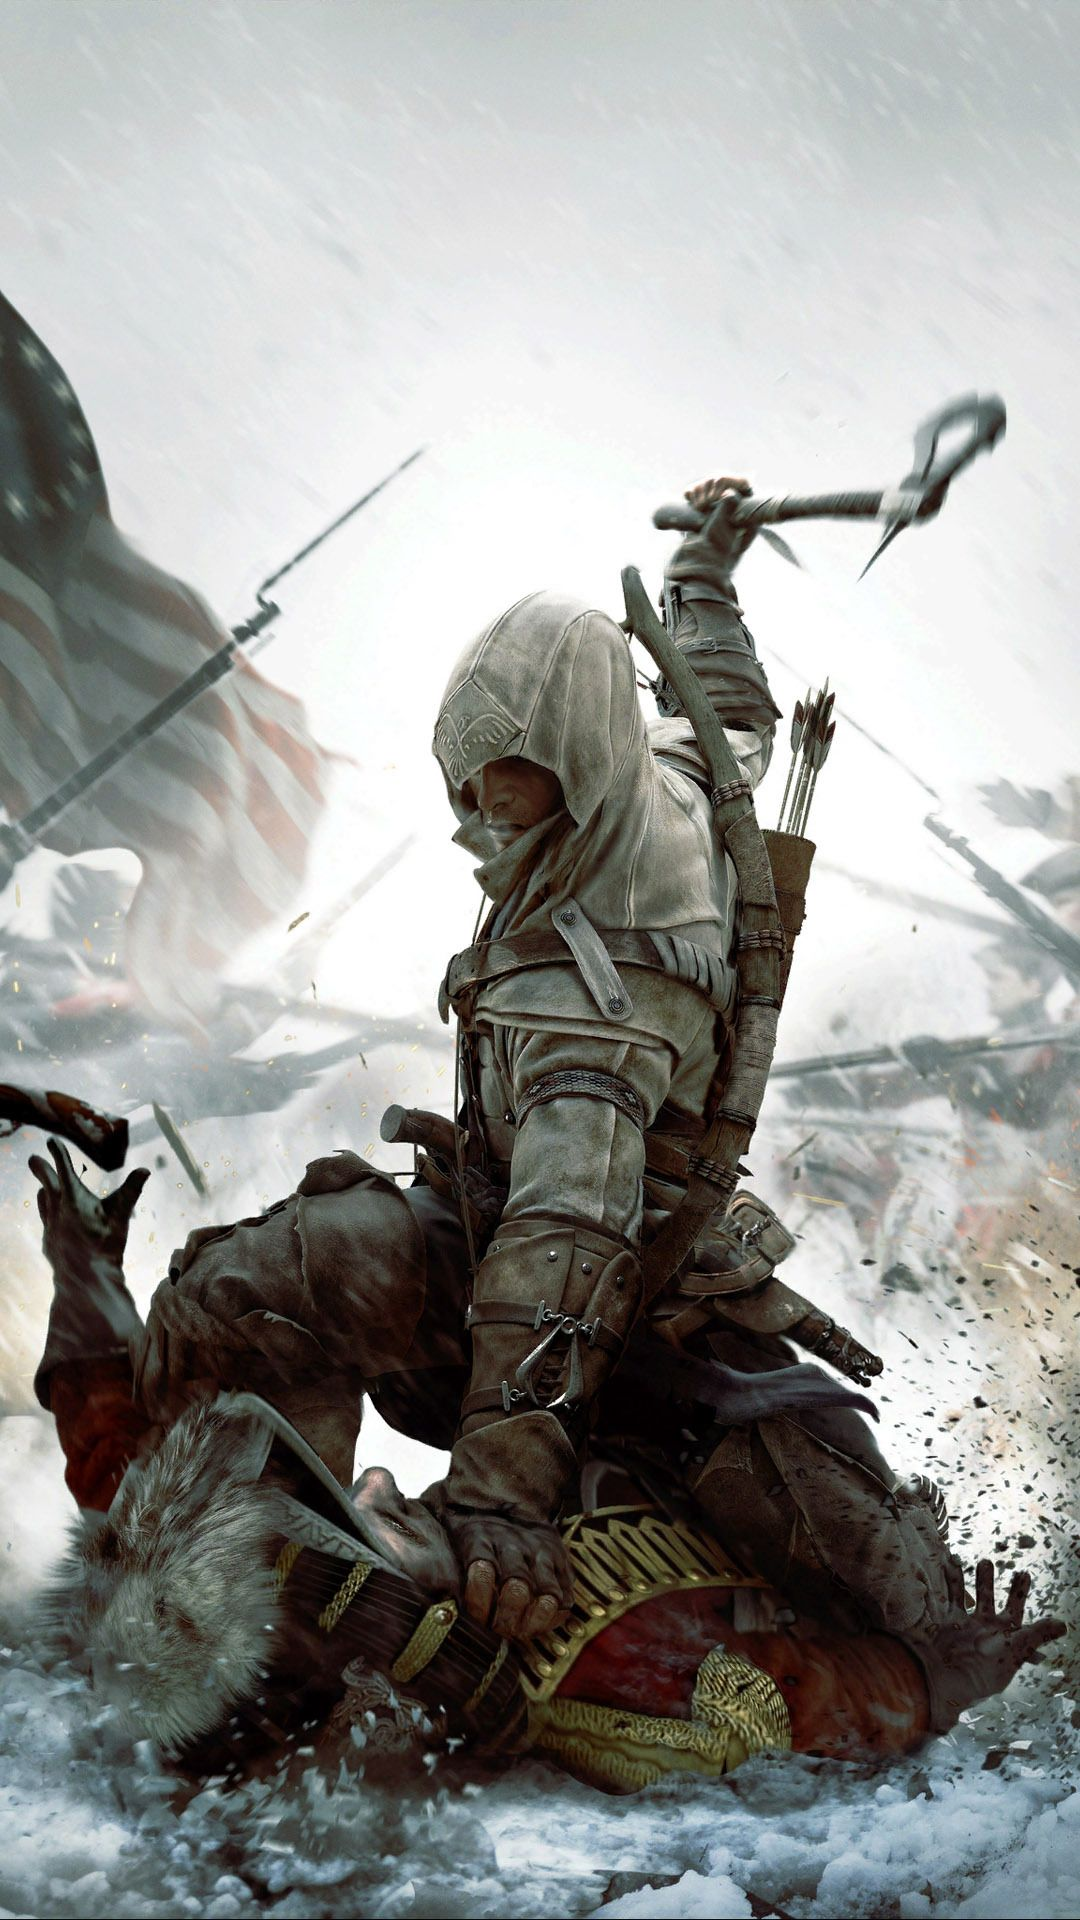 Connor Kenway Assassin's Creed III Mobile Wallpaper